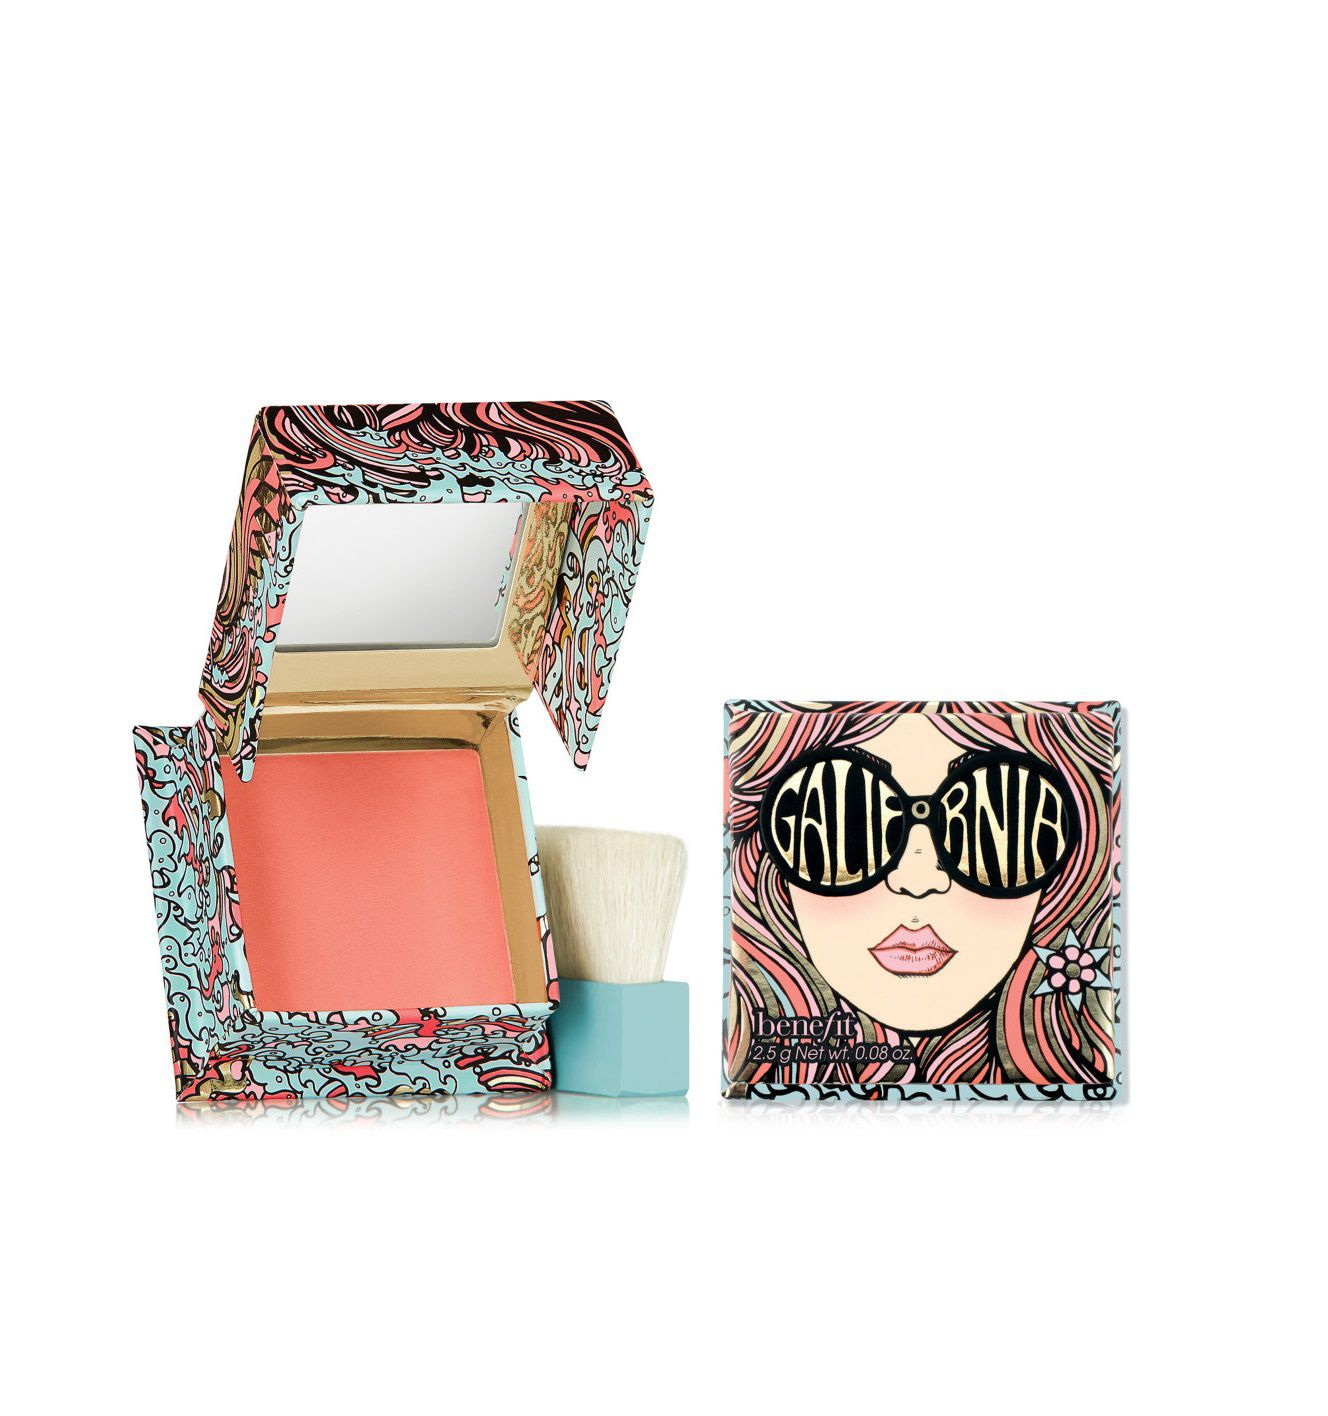 Mini blush GALifornia BENEFIT COSMETICS